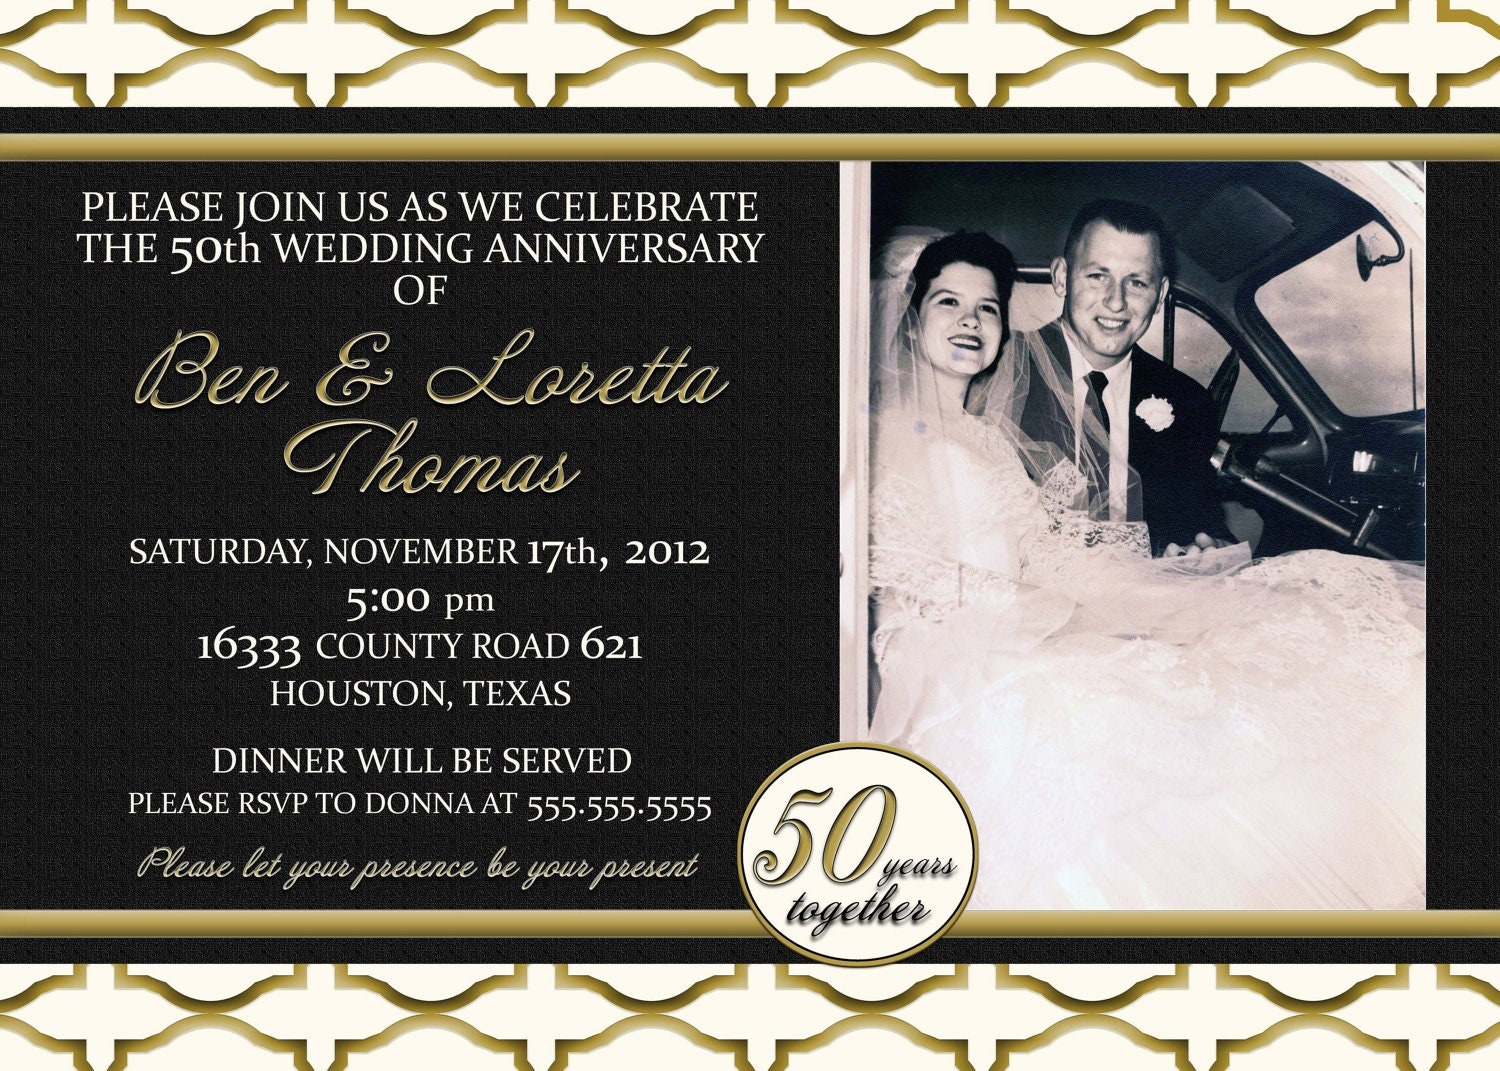 50th Wedding Anniversary Invitation Ideas: Custom Gold Black And Ivory 50th Anniversary Photo Invitation